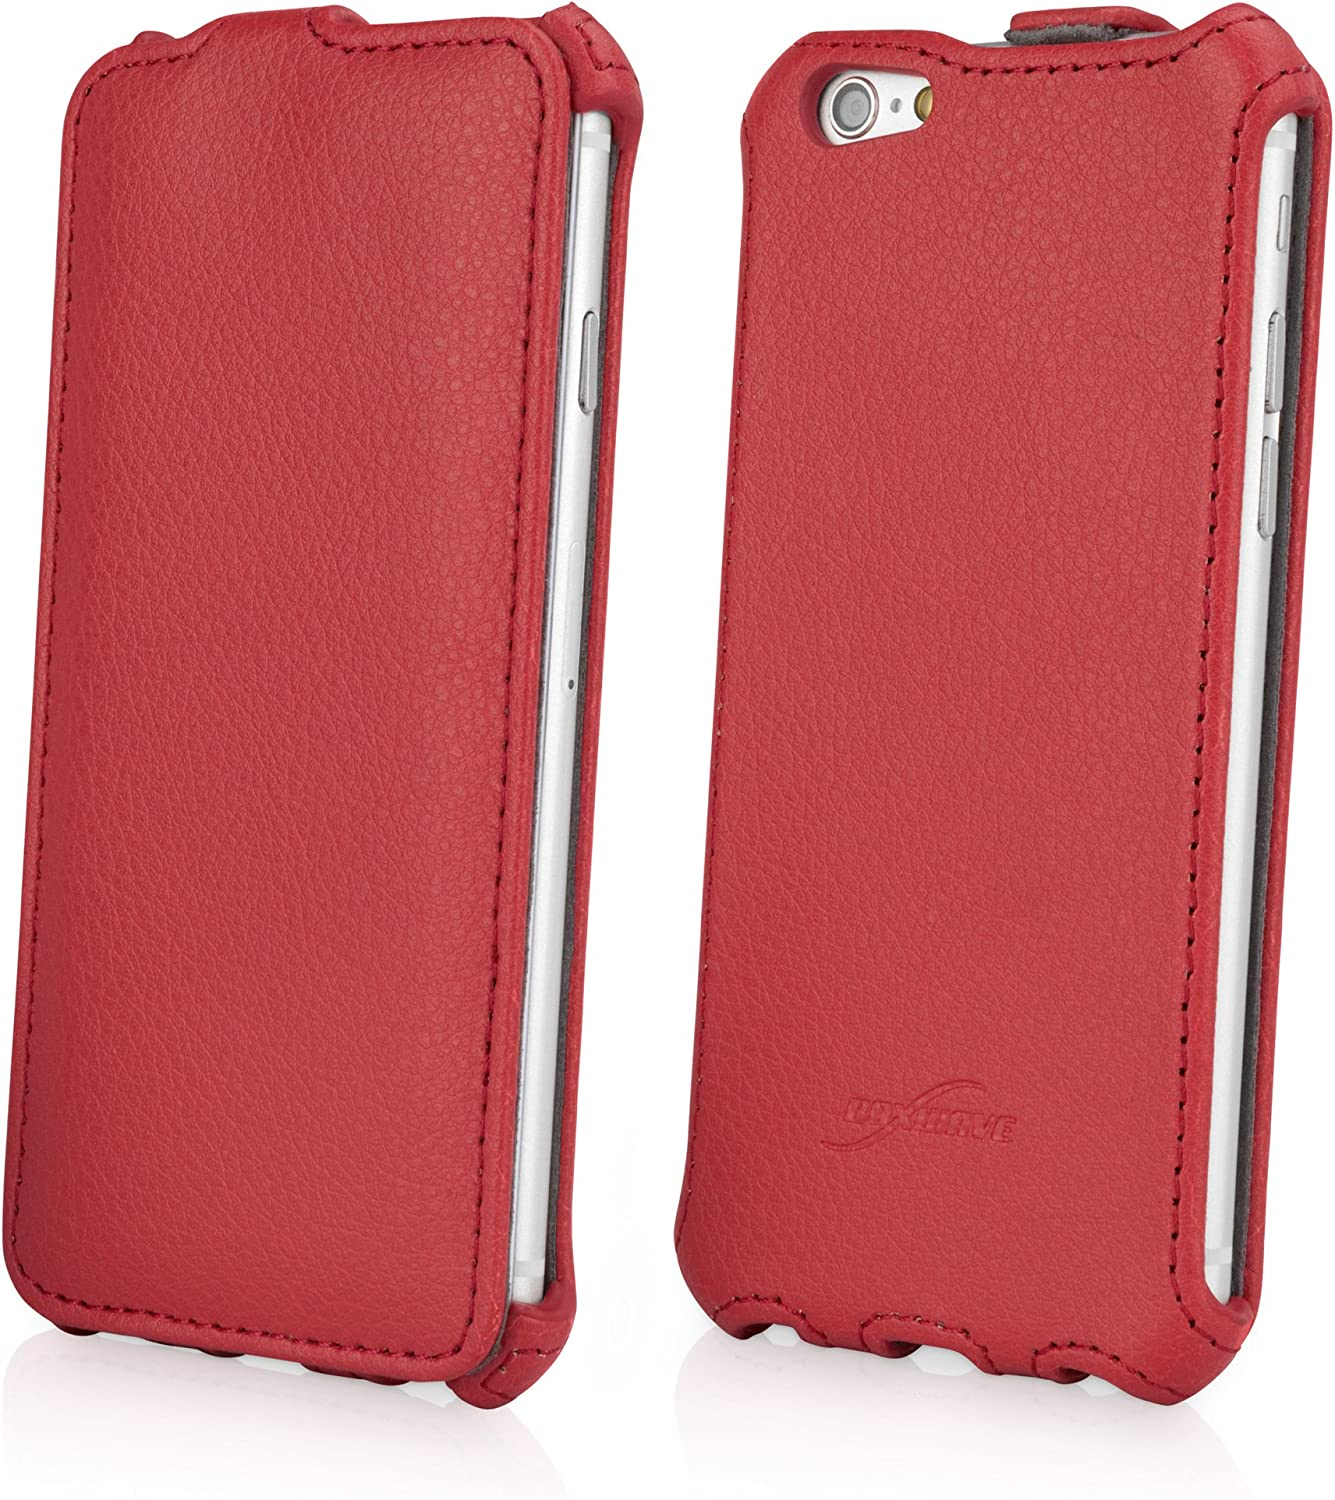 Case for iPhone 6 by BoxWave Fashionable - Leather Bon with Ranking TOP3 Flip